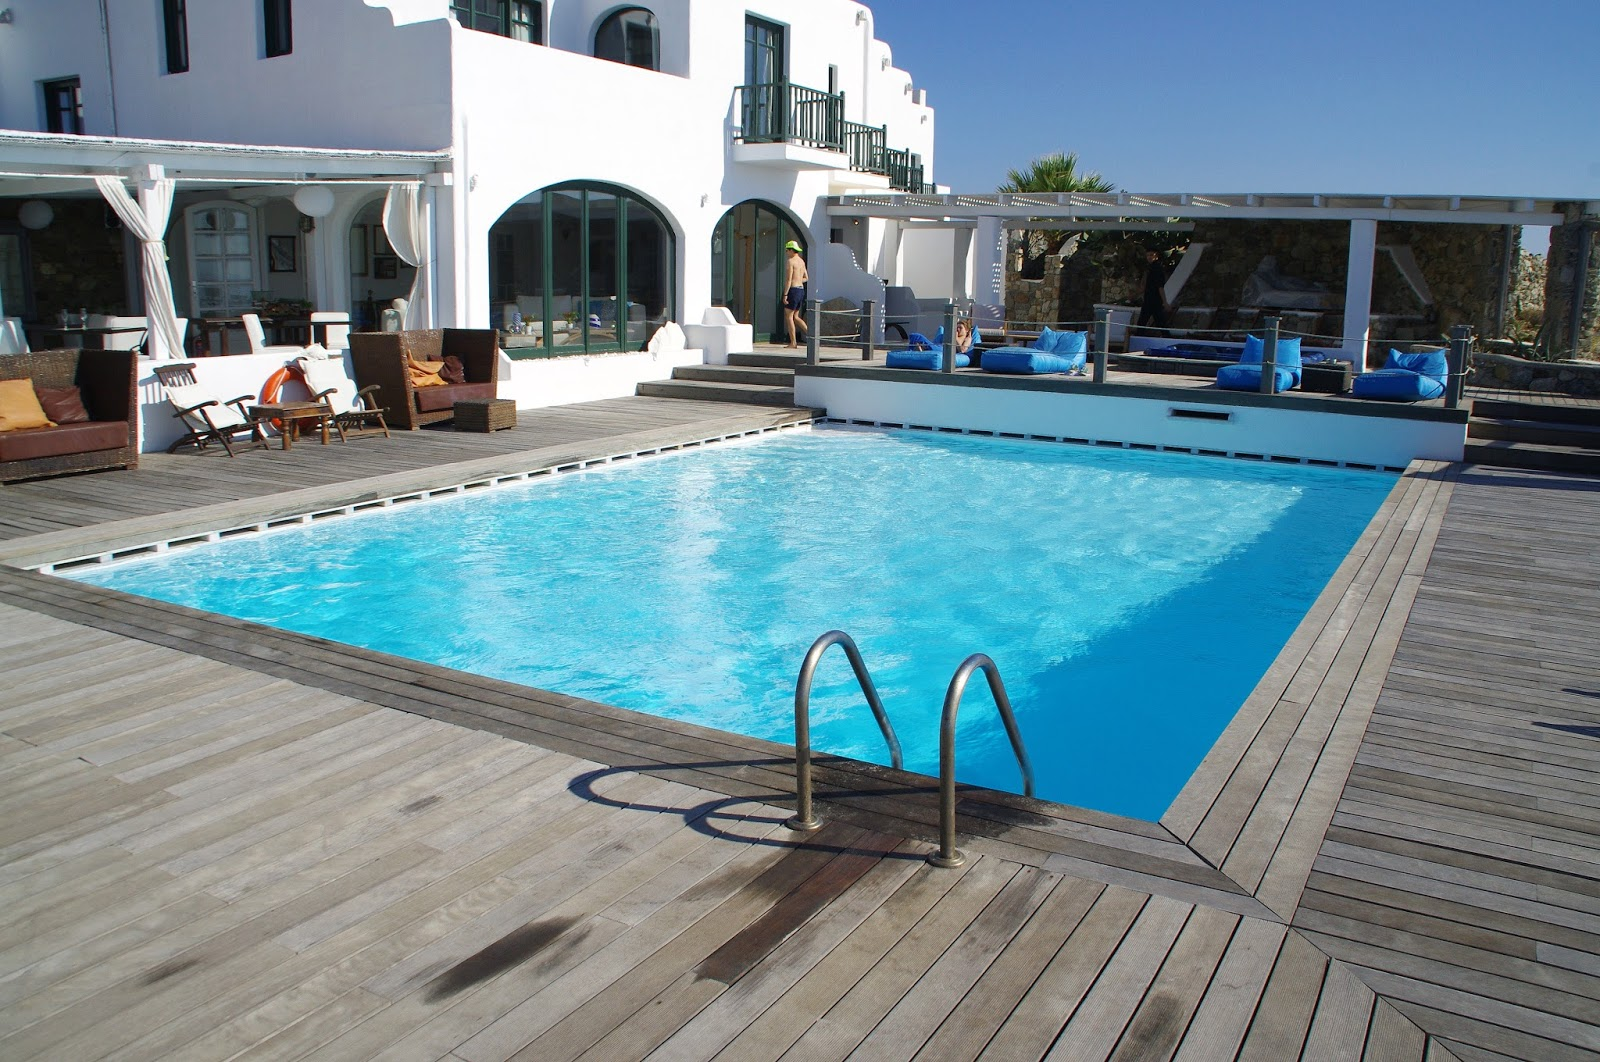 Tharroe of Mykonos Swimming Pool and Deck